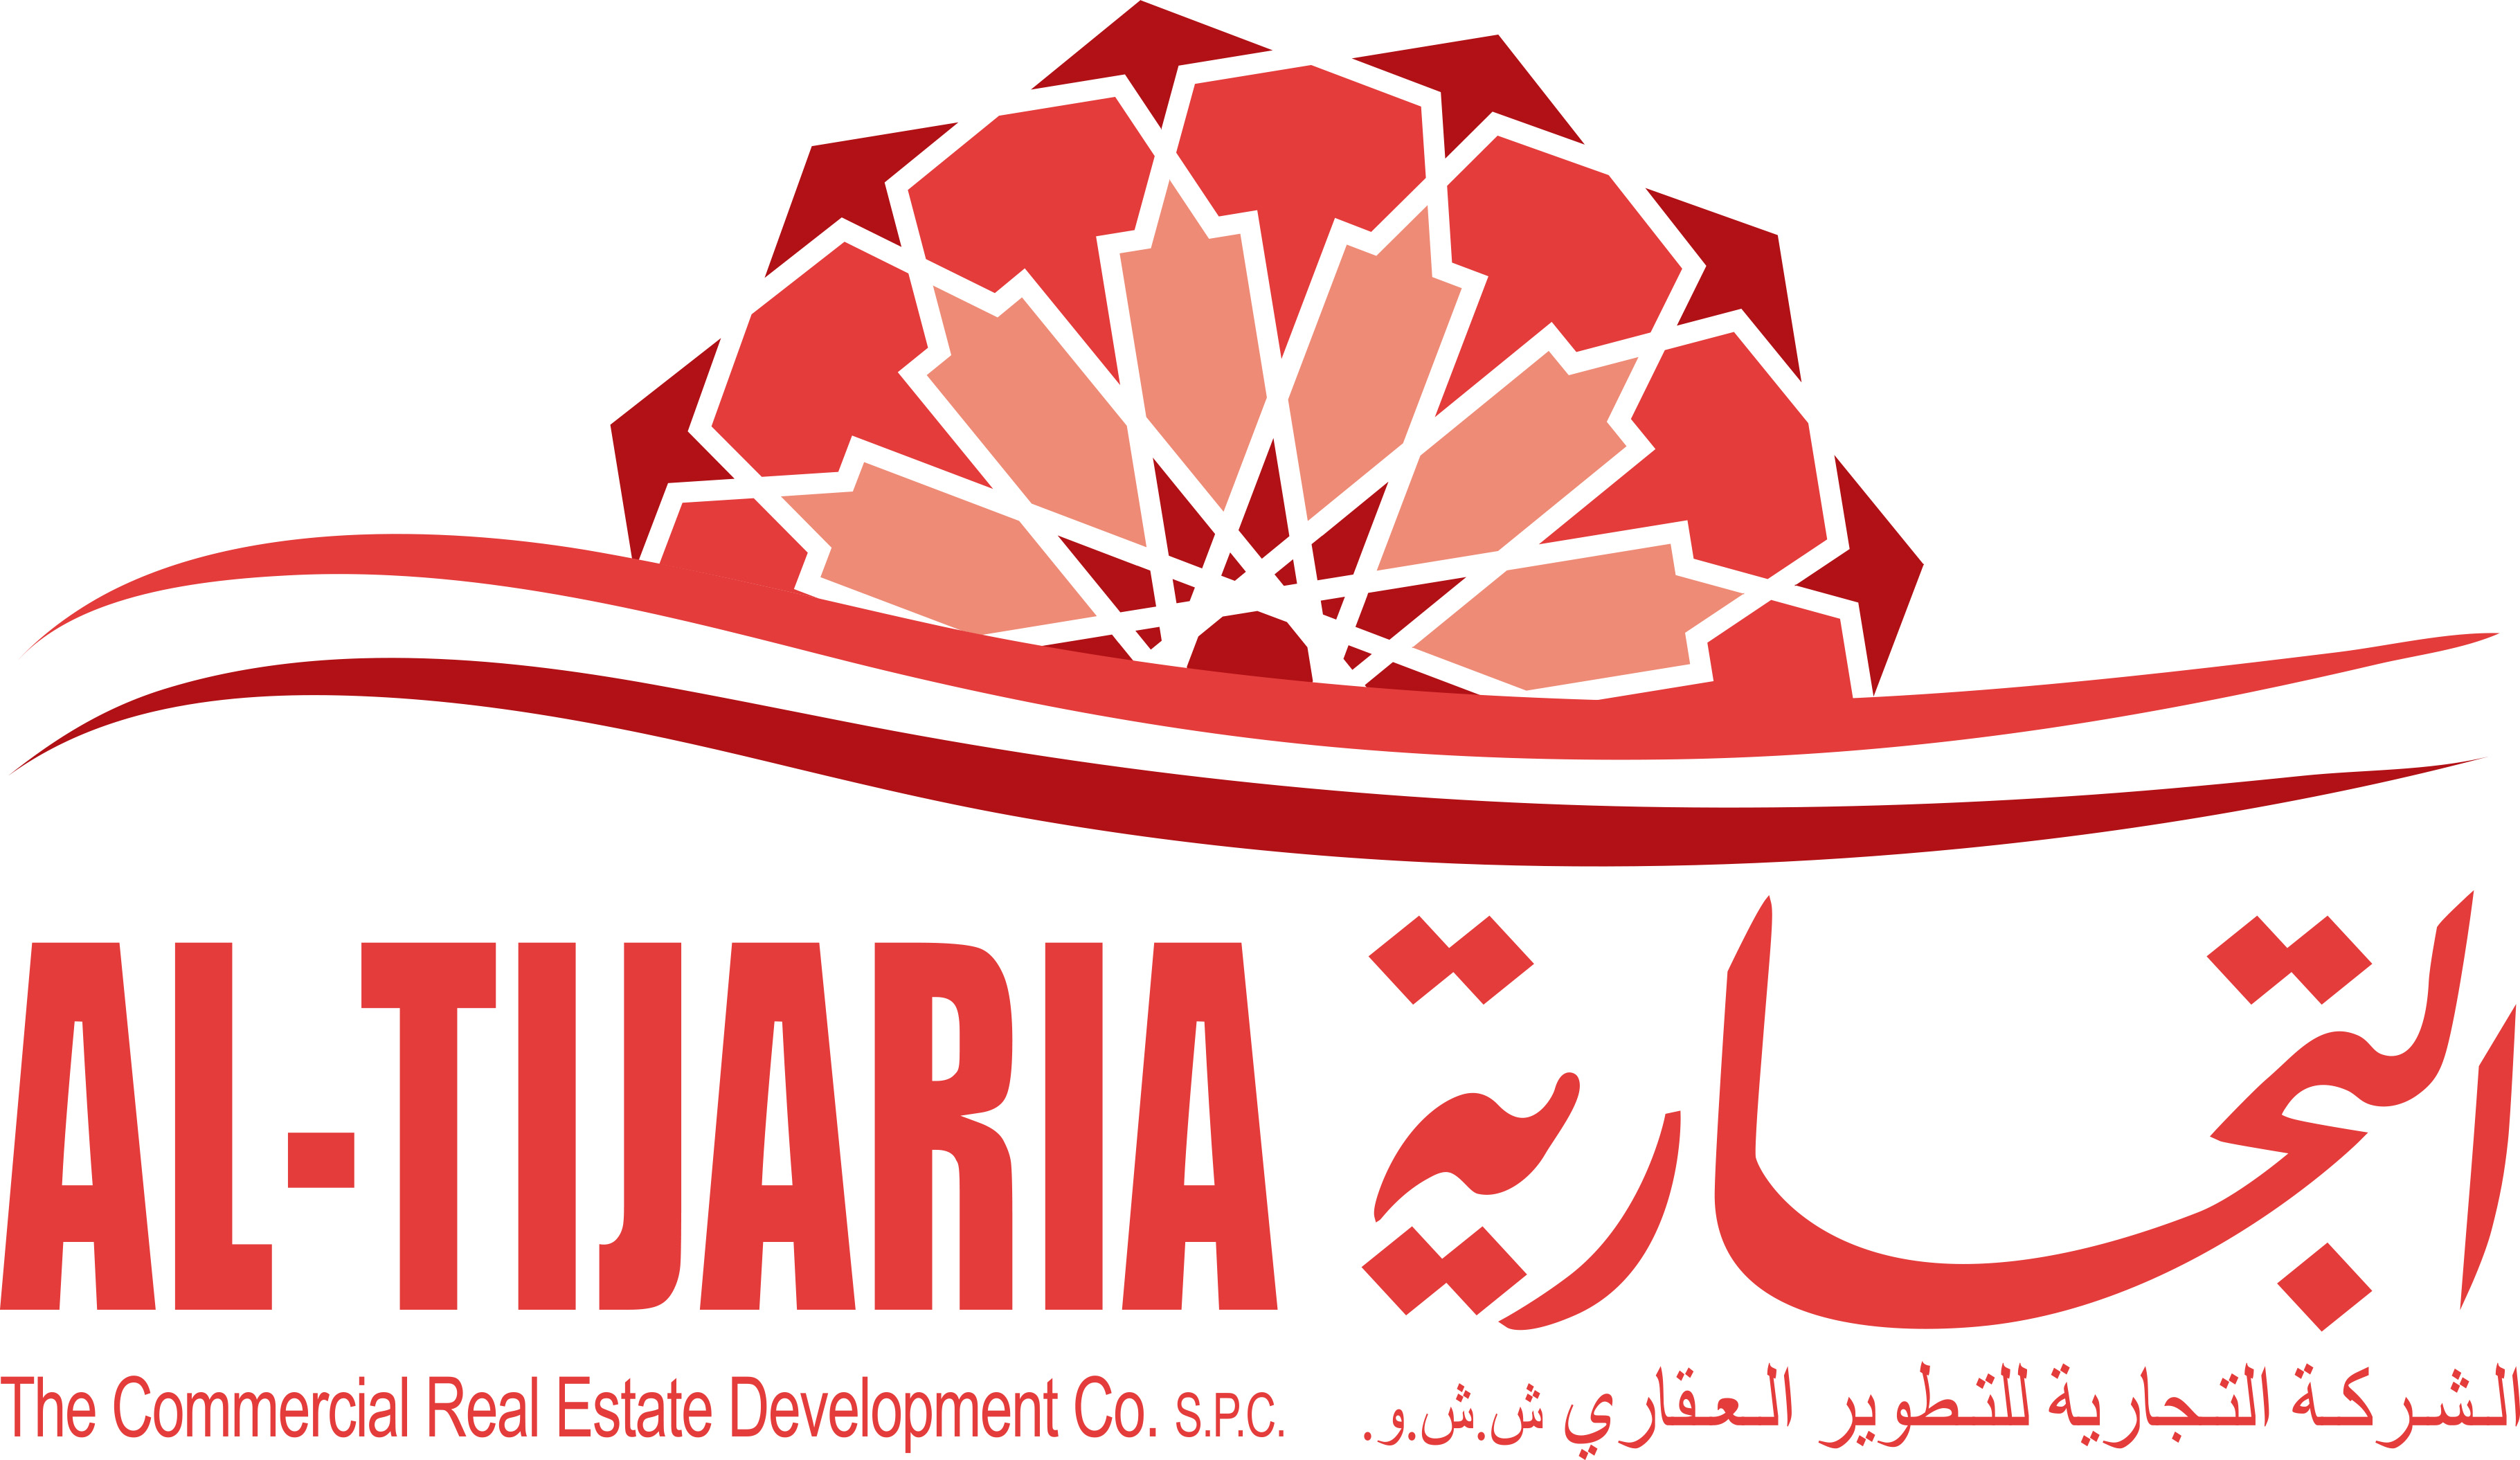 Al Tijaria Real Estate